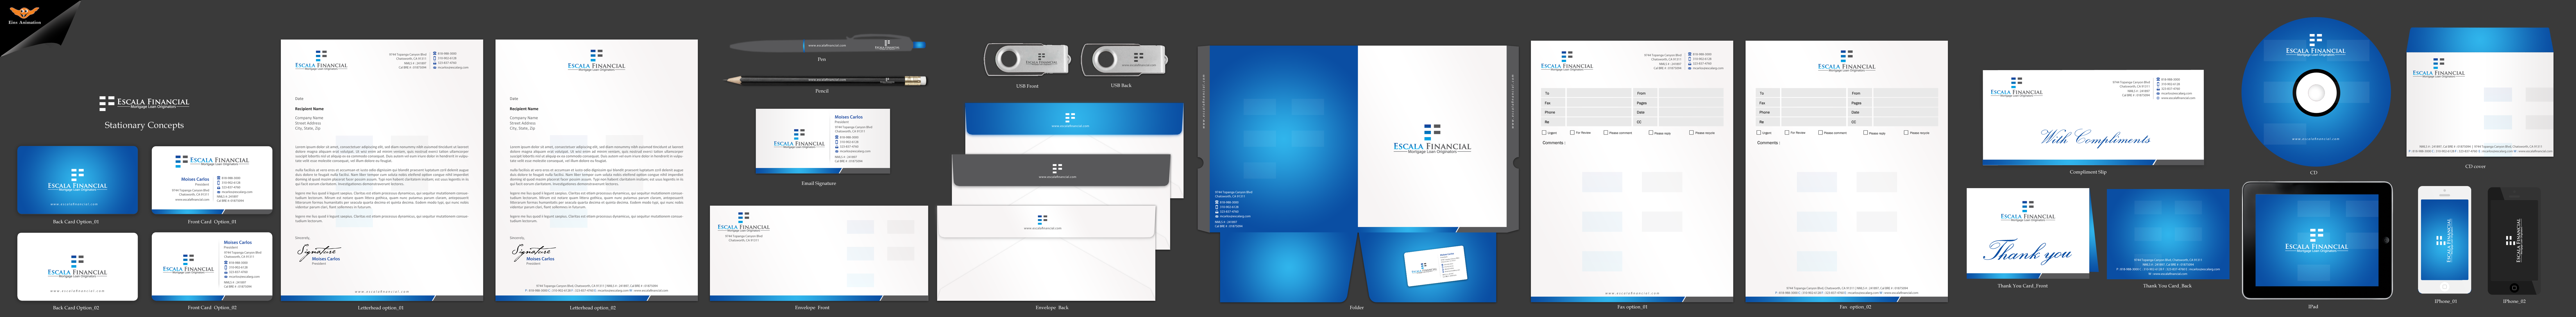 Mortgage Co Stationary - Financial Services